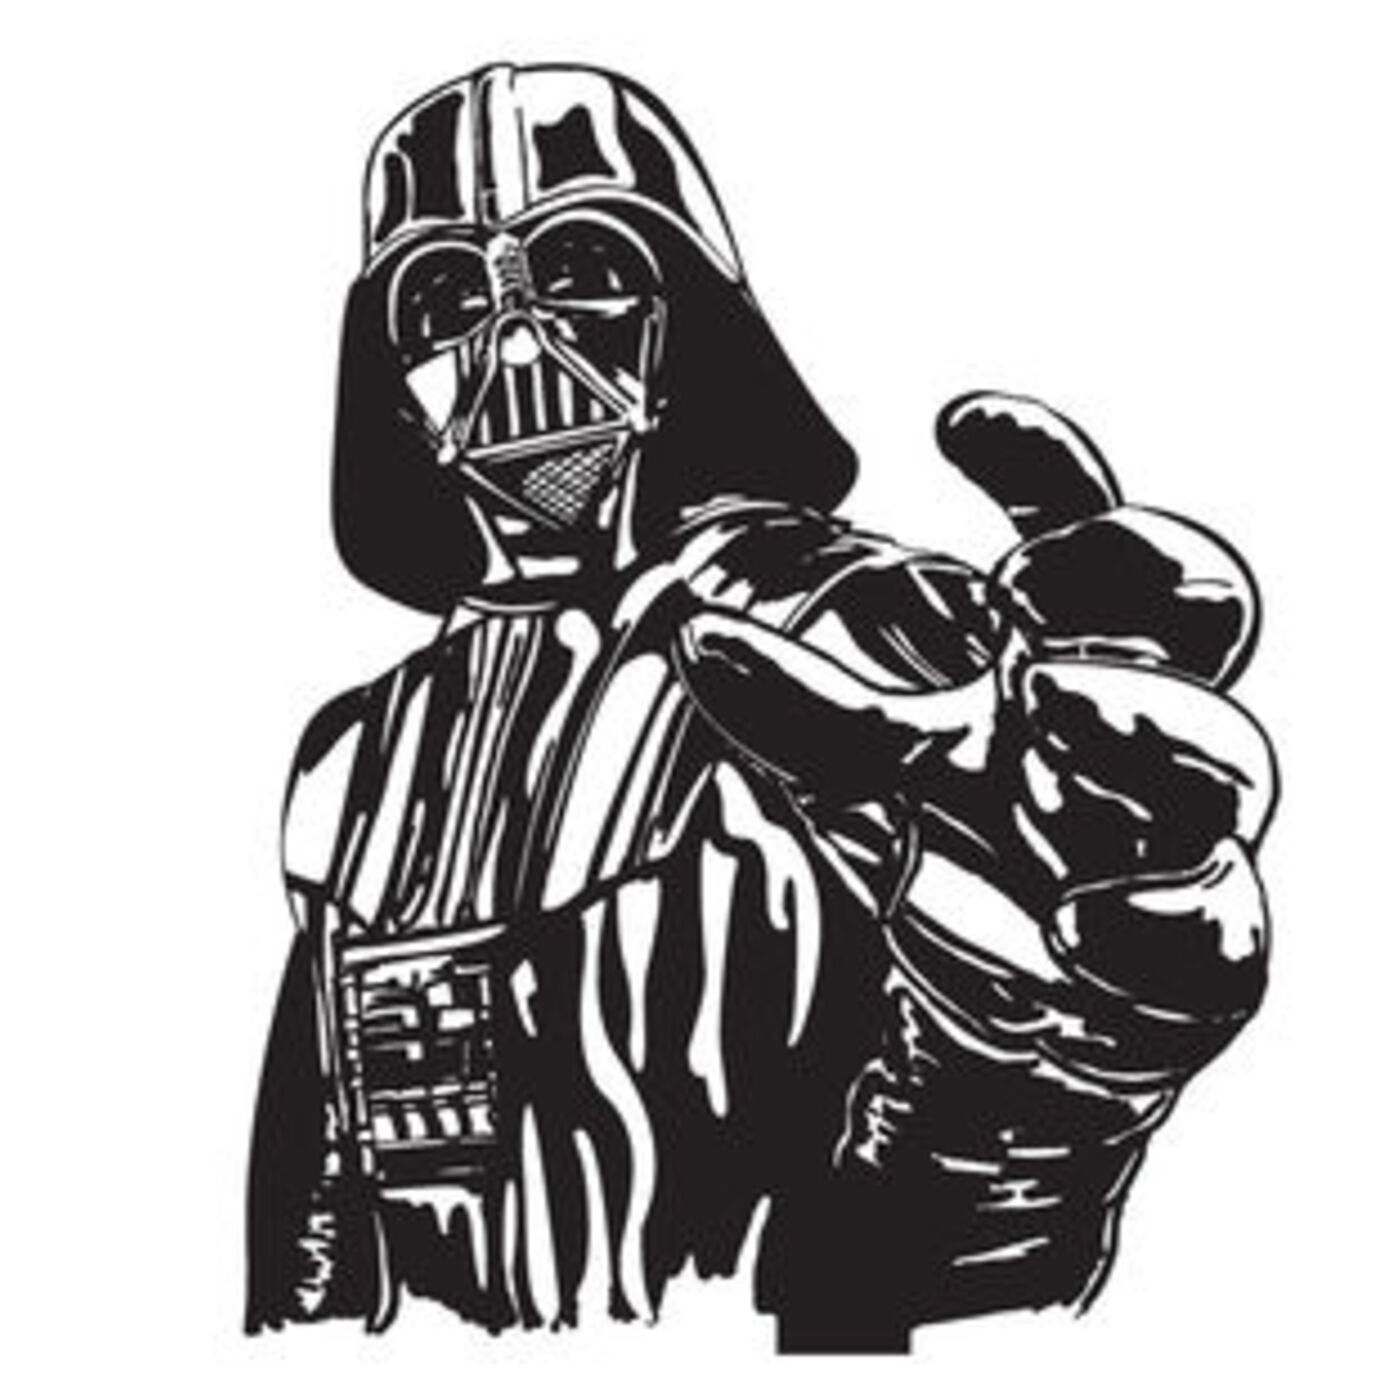 Star Wars Fans: May the fourth be with you! but Today's Revenge Of The Fifth!